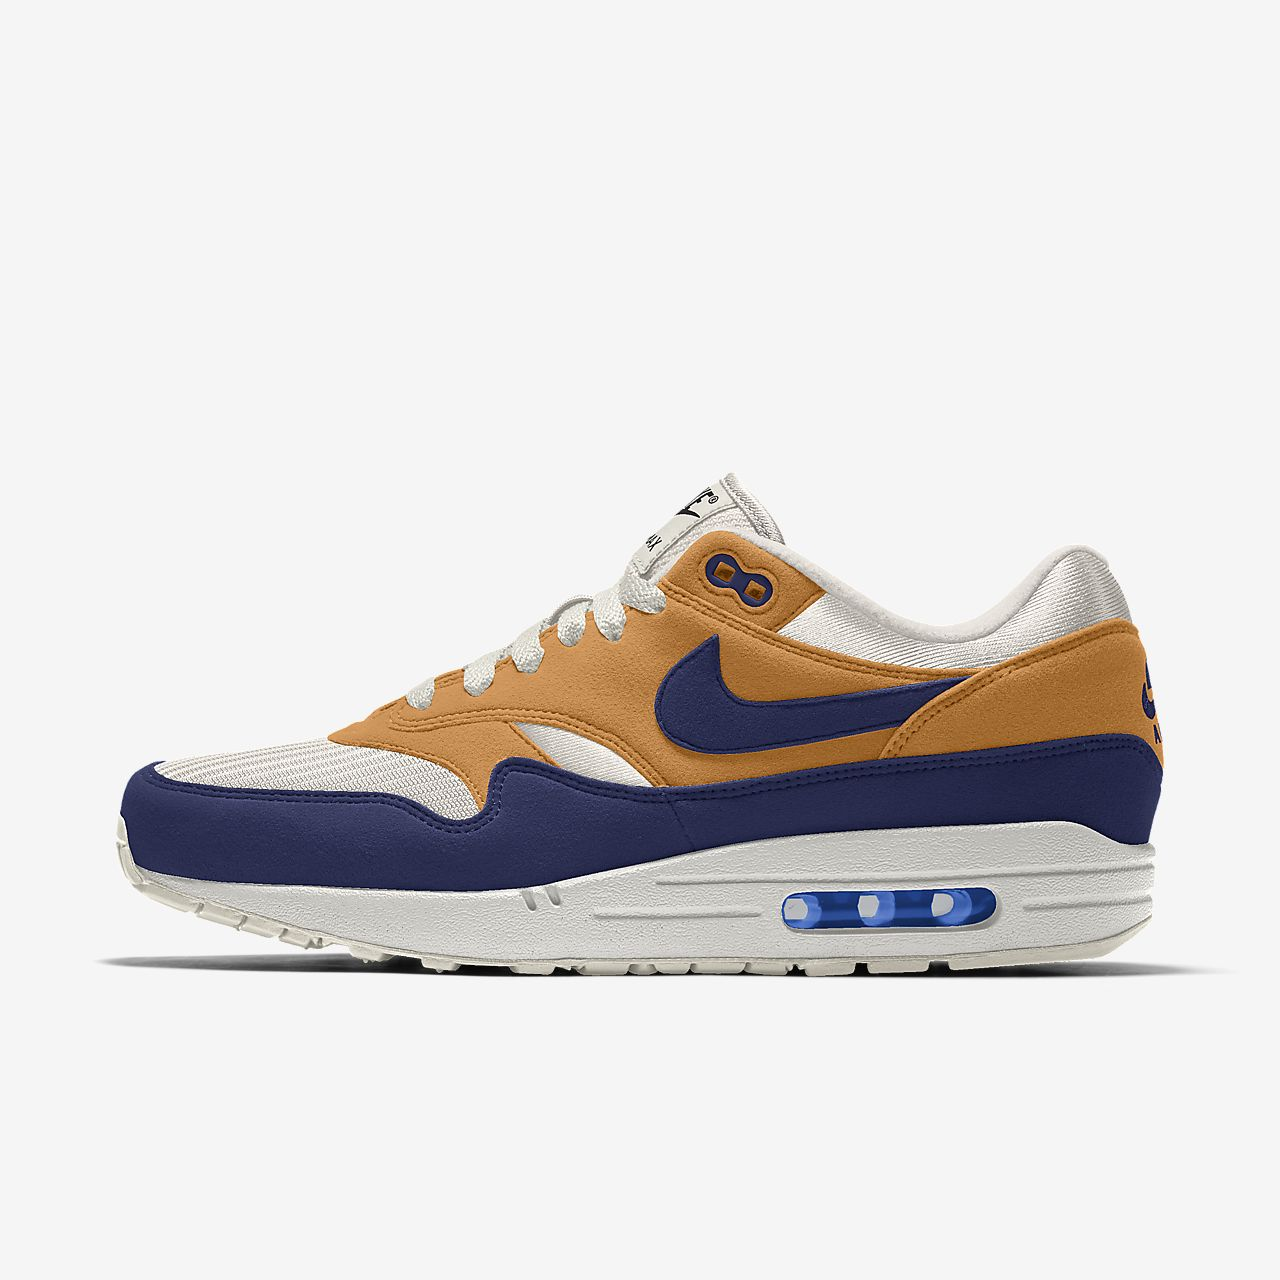 Chaussure personnalisable Nike Air Max 1 By You pour Homme